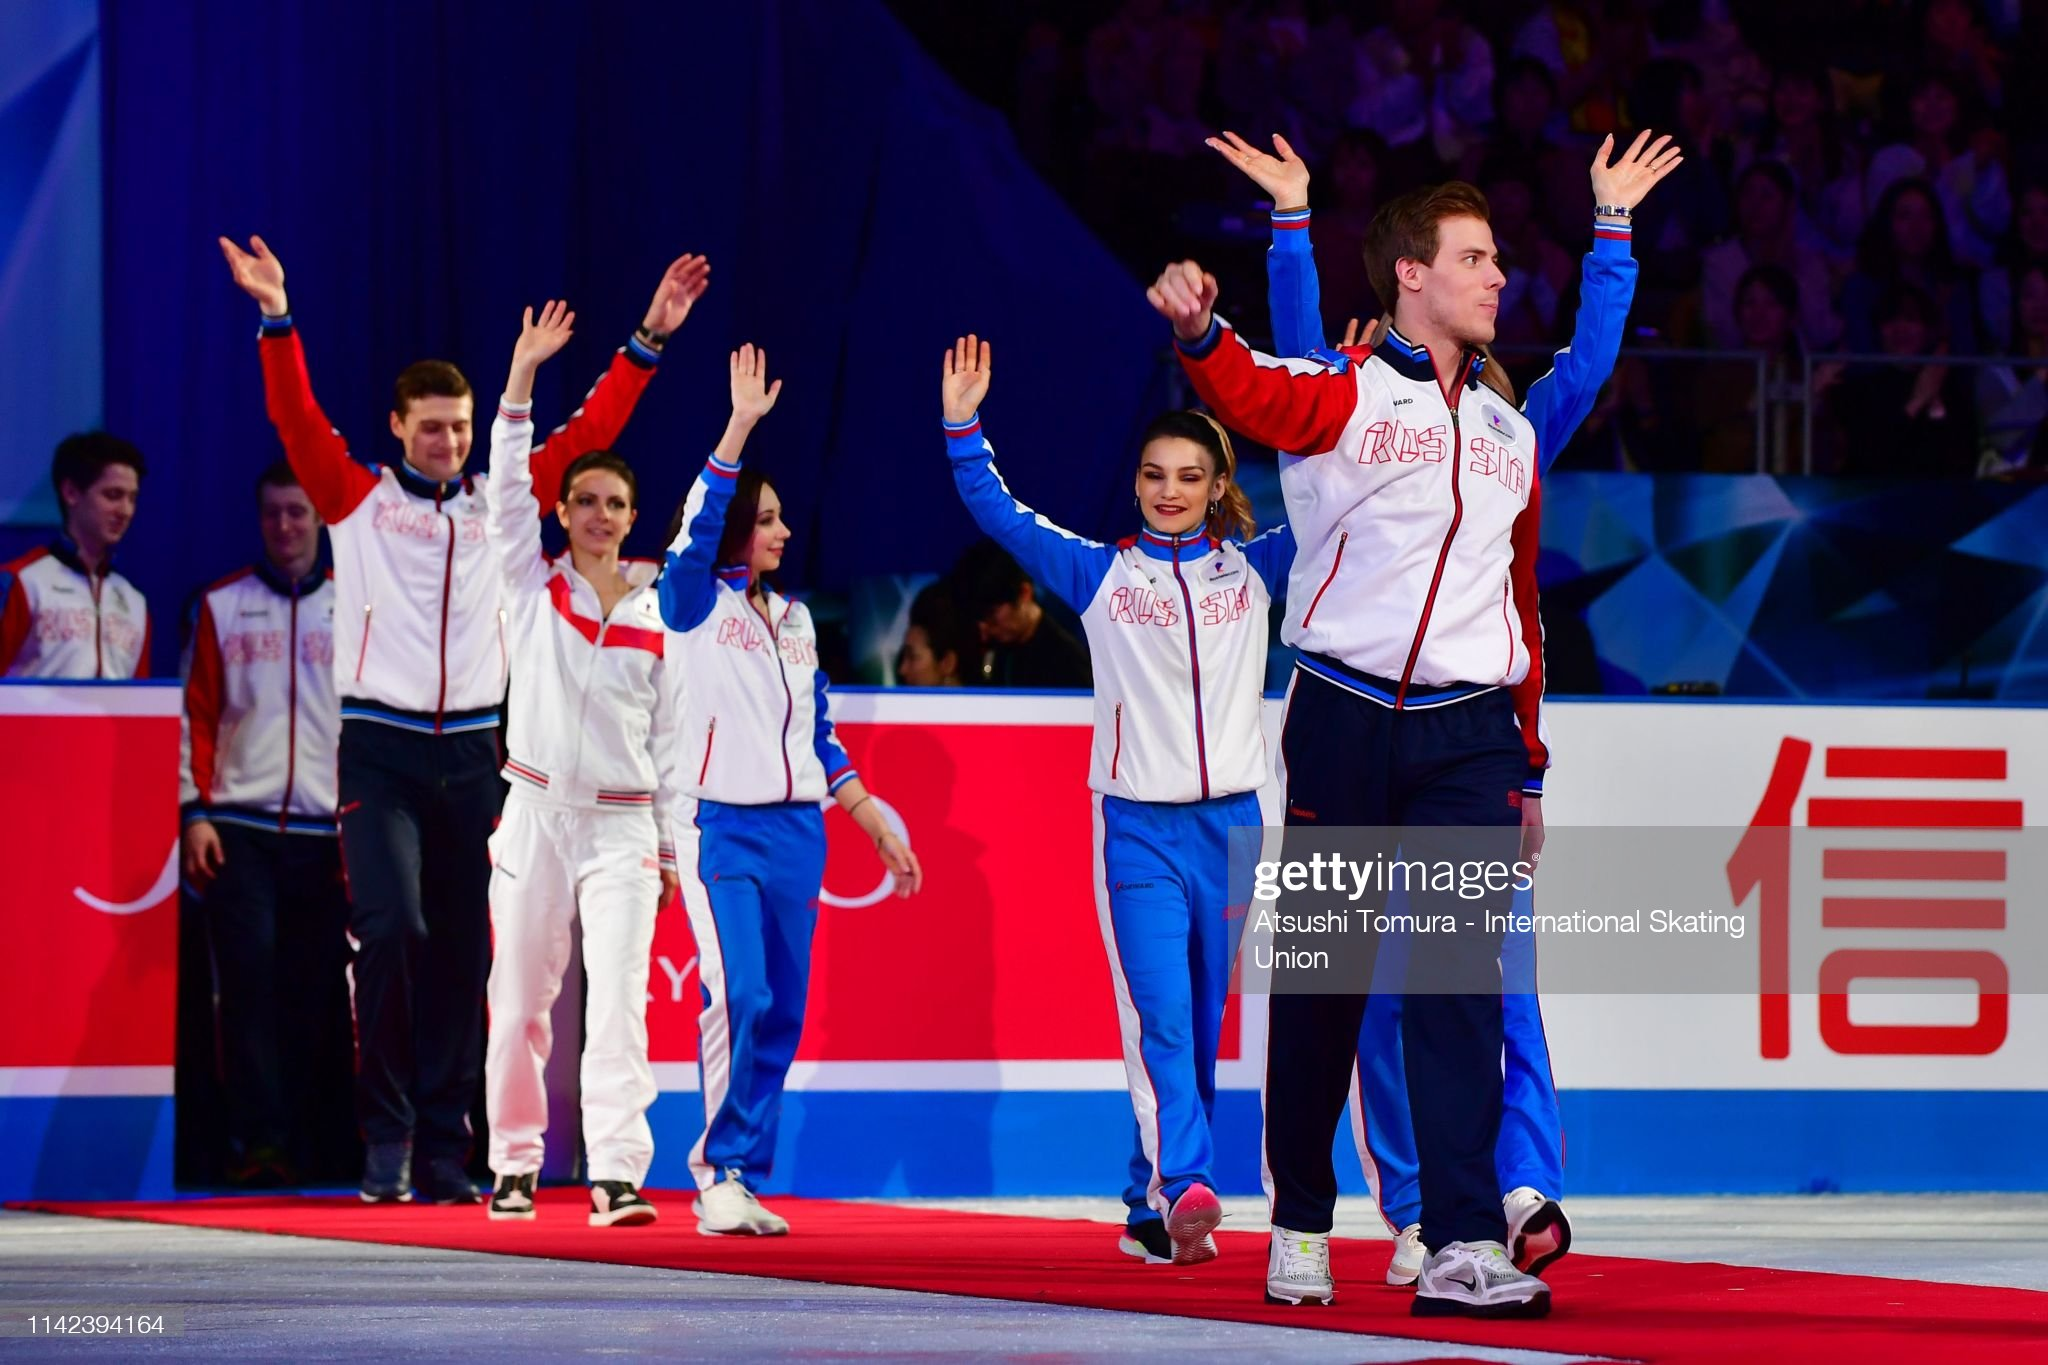 https://media.gettyimages.com/photos/bronze-medalists-team-russia-walk-into-the-rink-prior-to-the-victory-picture-id1142394164?s=2048x2048